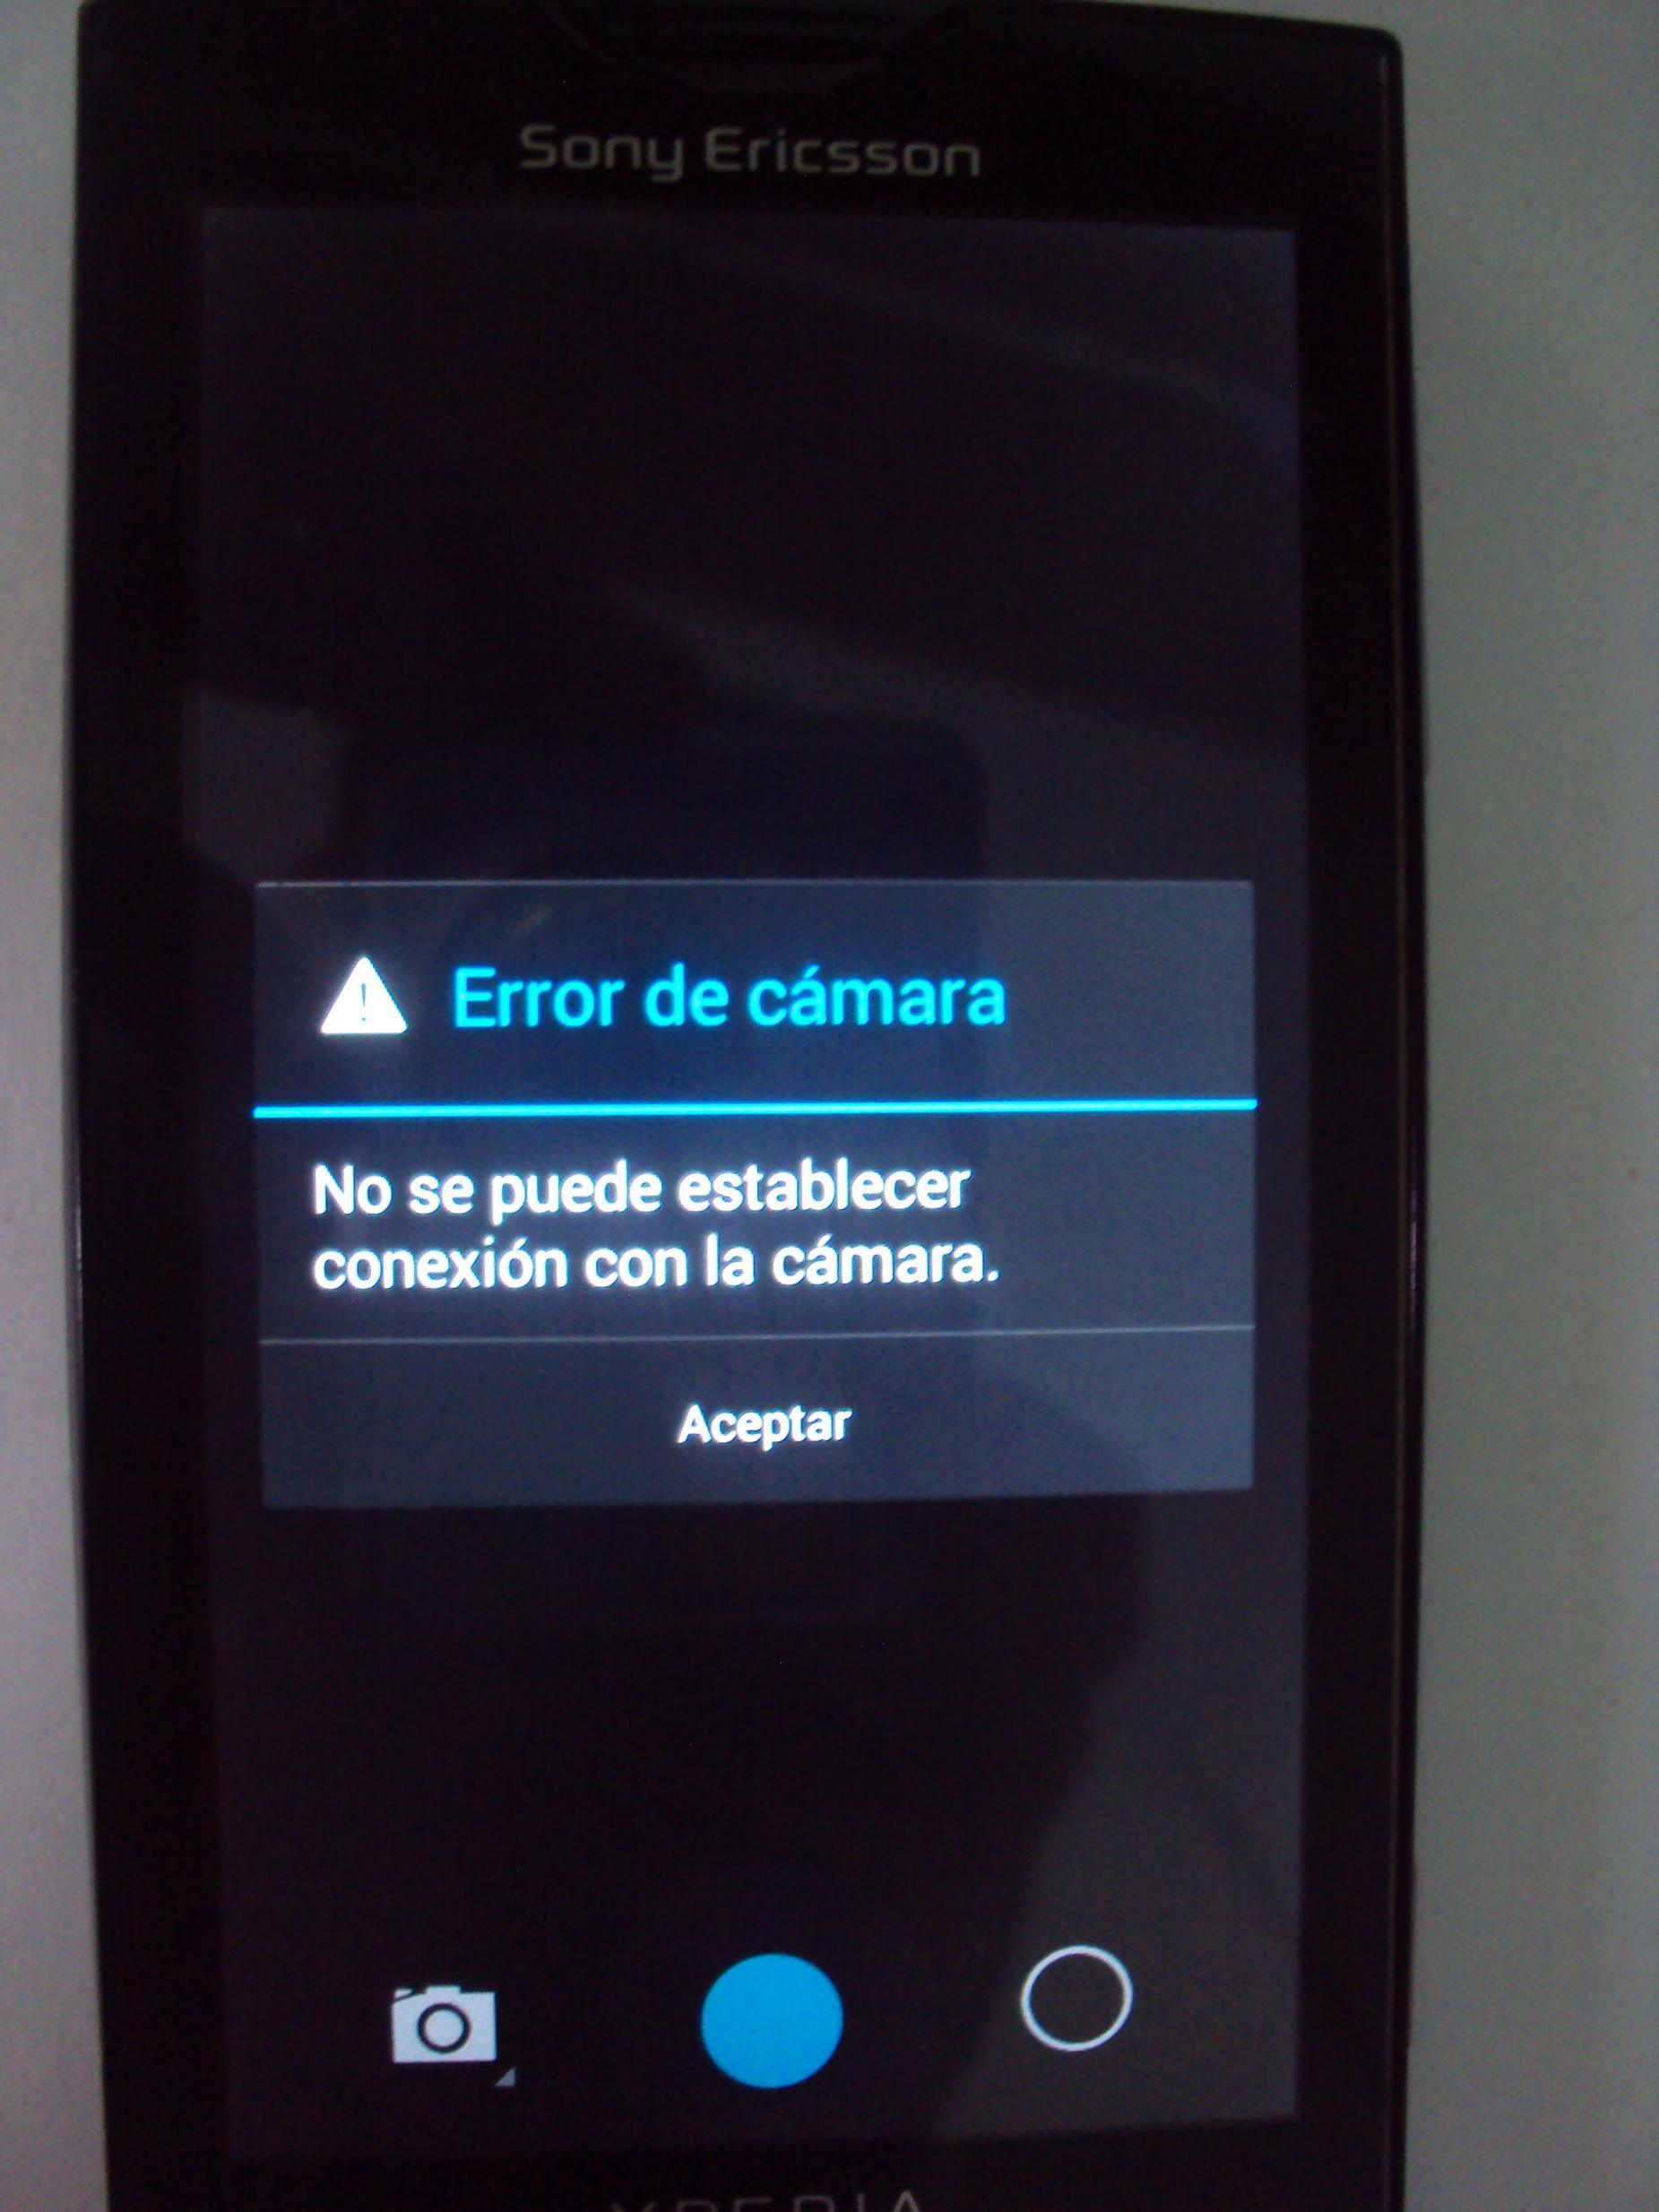 Xperia X10 KitKat 4.4.2 Camera not working